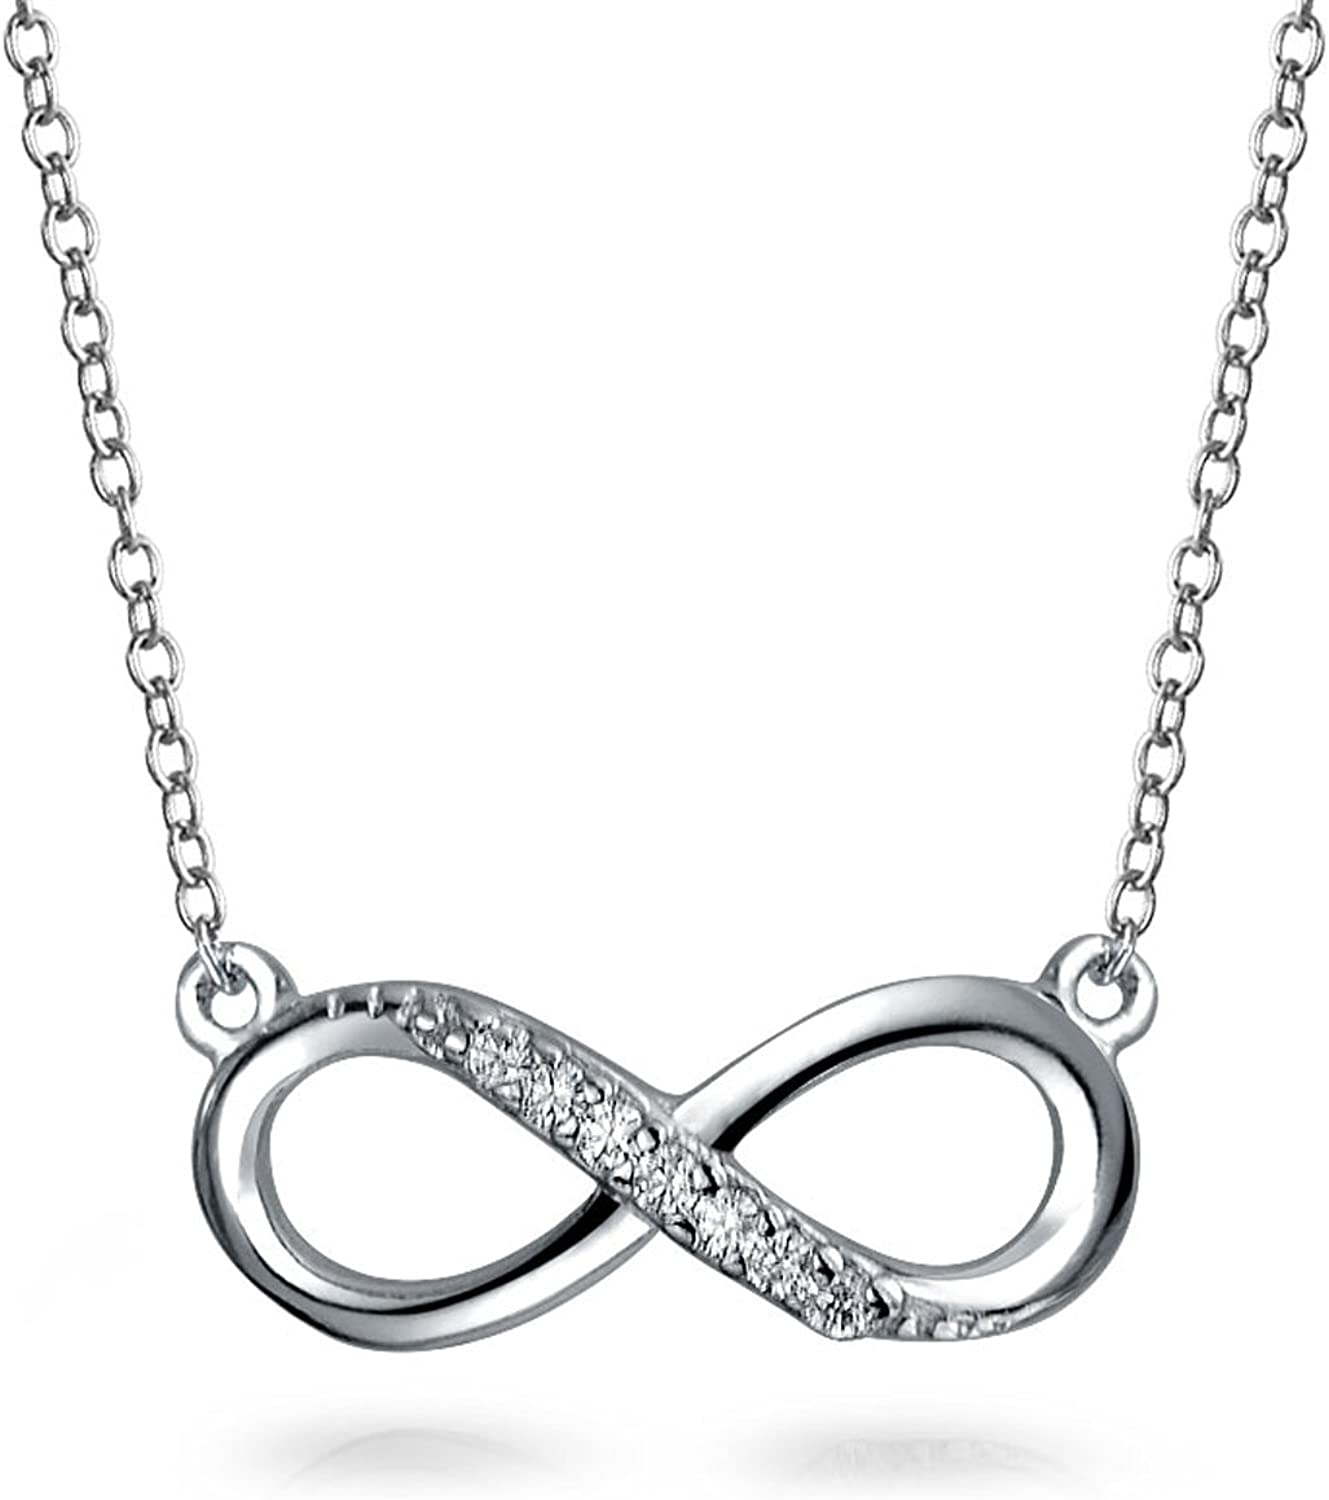 Infinity Necklace Forever Love 925 Sterling Silver Plated For Couples Women Girl